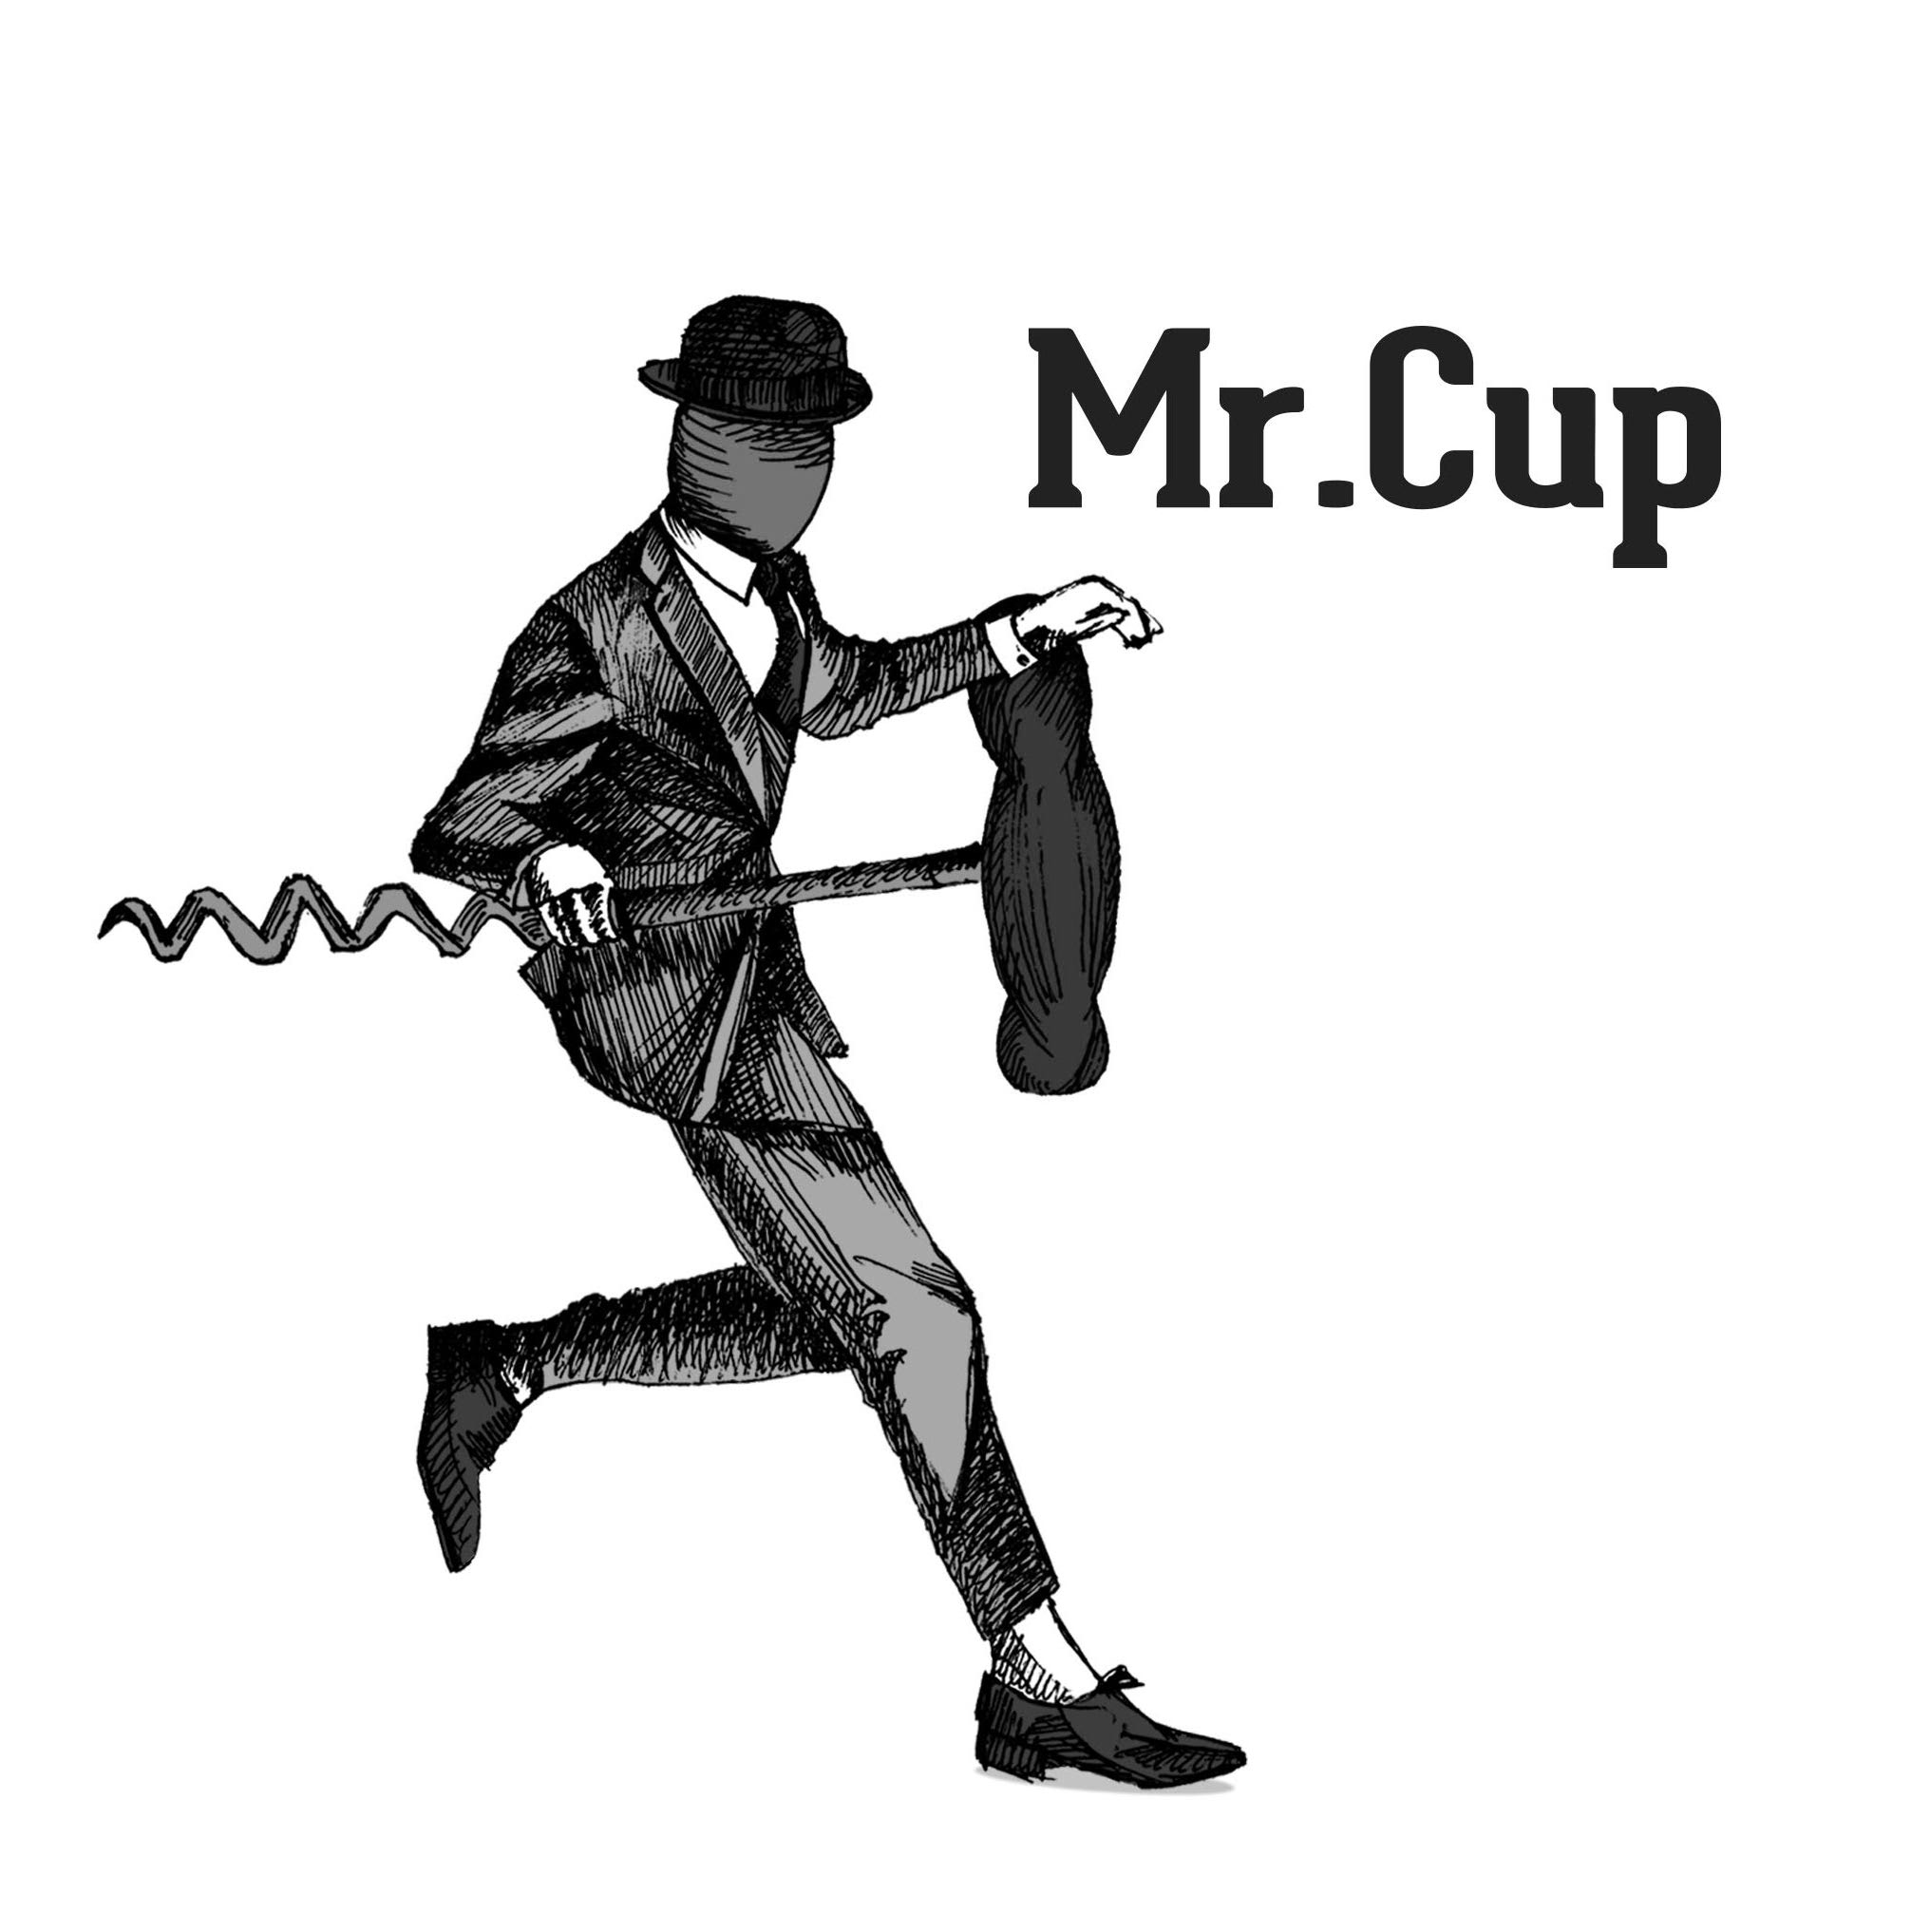 Mr. Cup